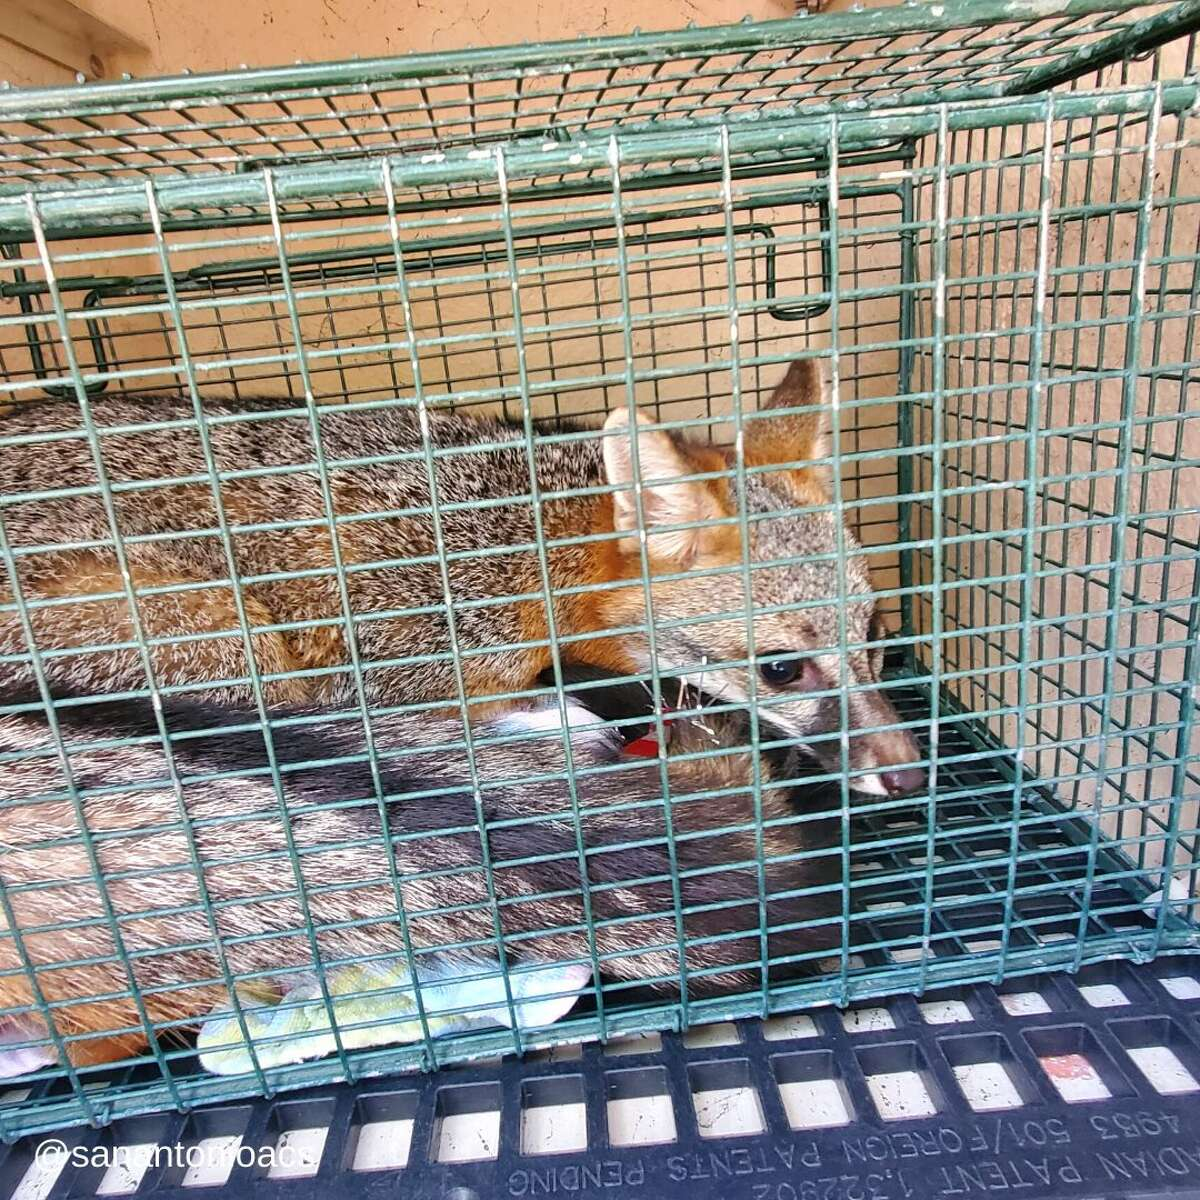 Animal Care Services officers rescued a fox that was found perched on top of a cabinet in an office at San Antonio College last week.